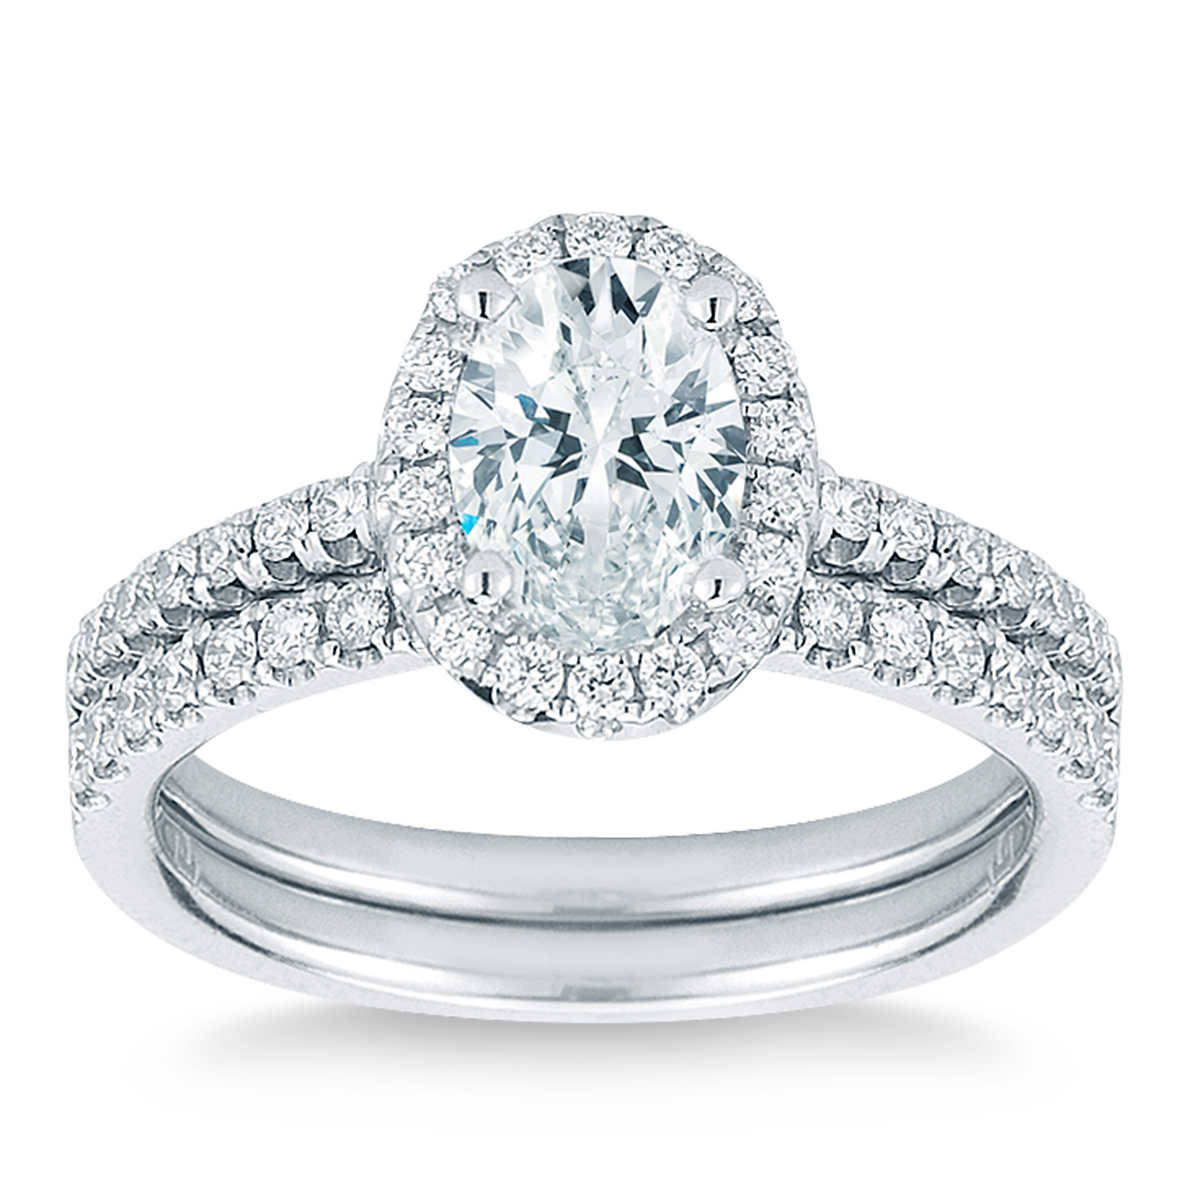 Oval & Round Brilliant 150 Ctw Vs2 Clarity, I Color Diamond Platinum  Wedding Set